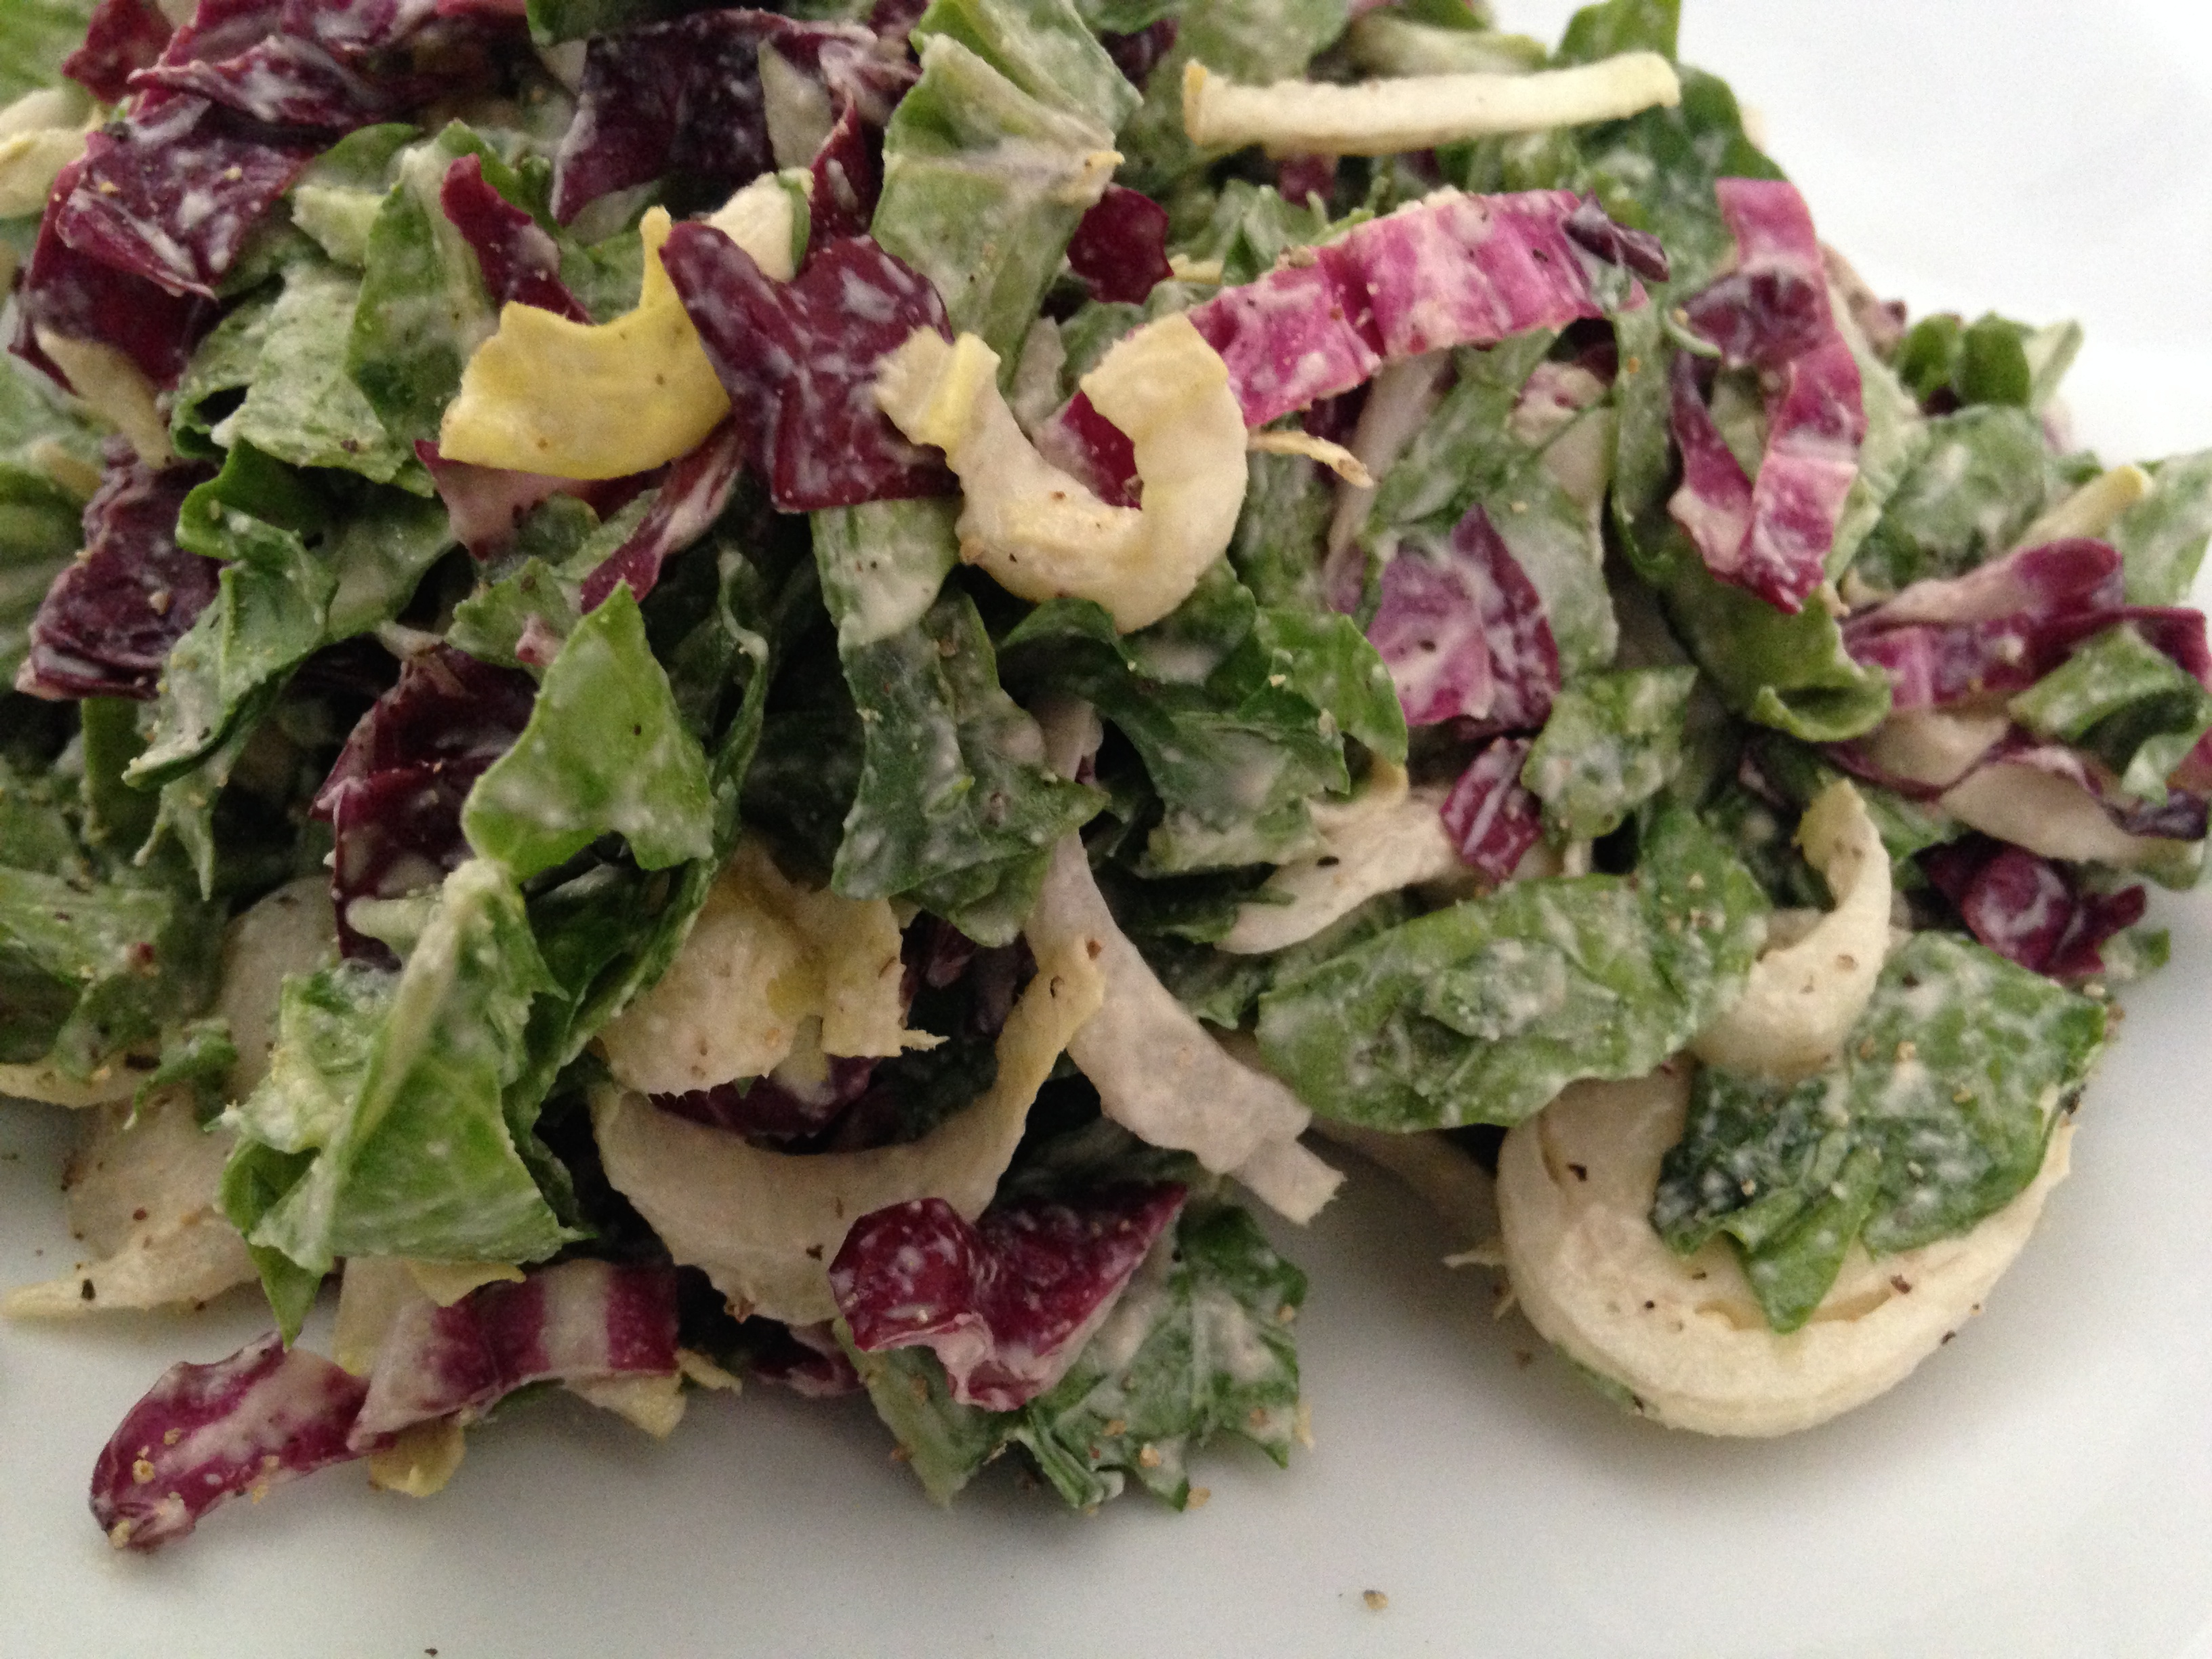 Tricolore Salad with Creamy Italian Dressing | Lisa's Project: Vegan